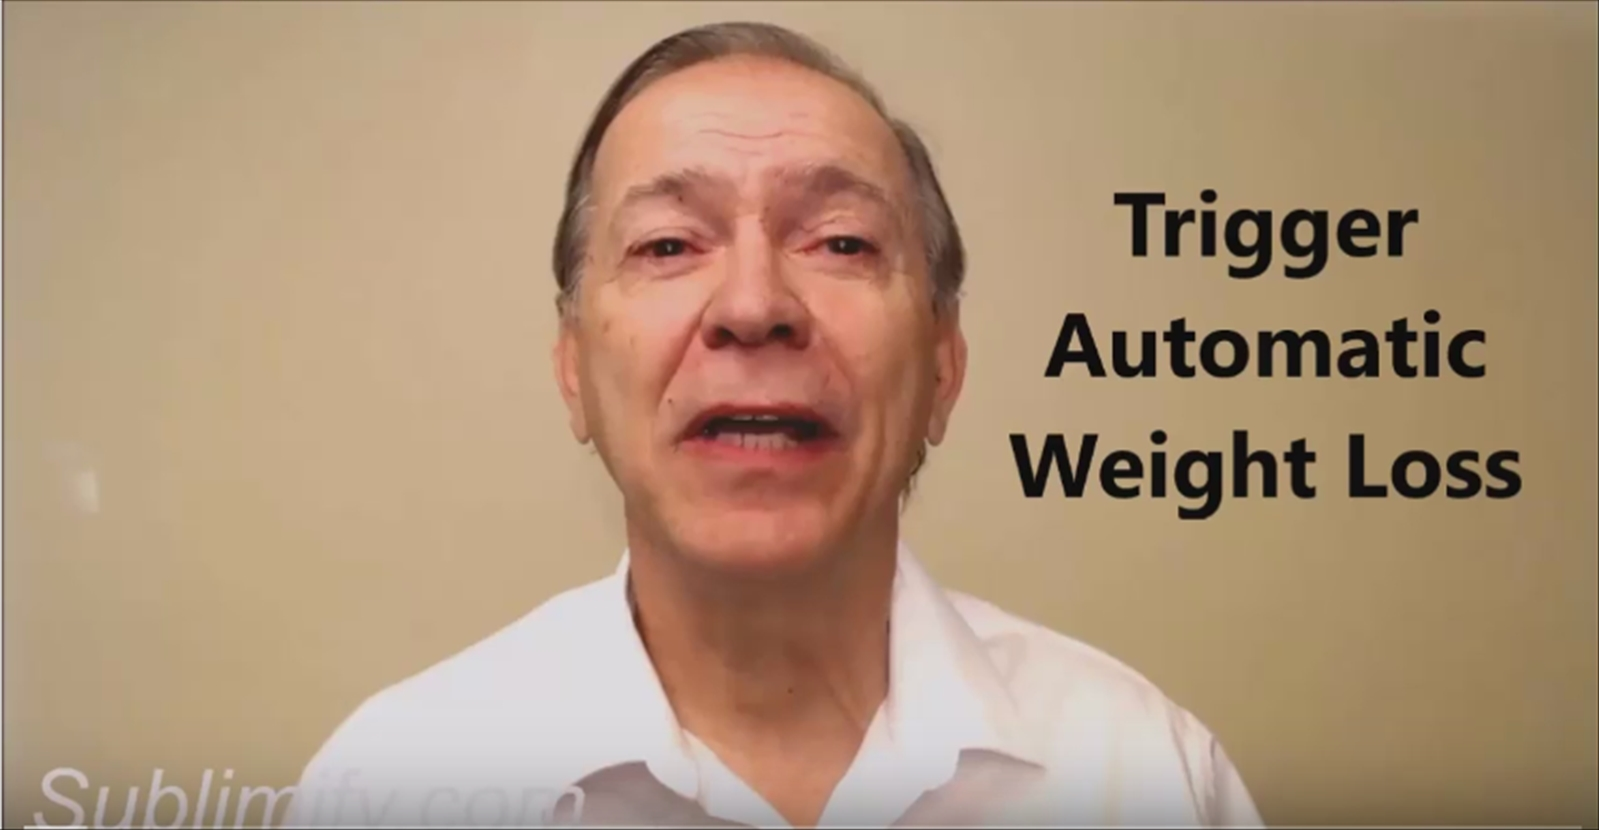 Automatic Weight Loss